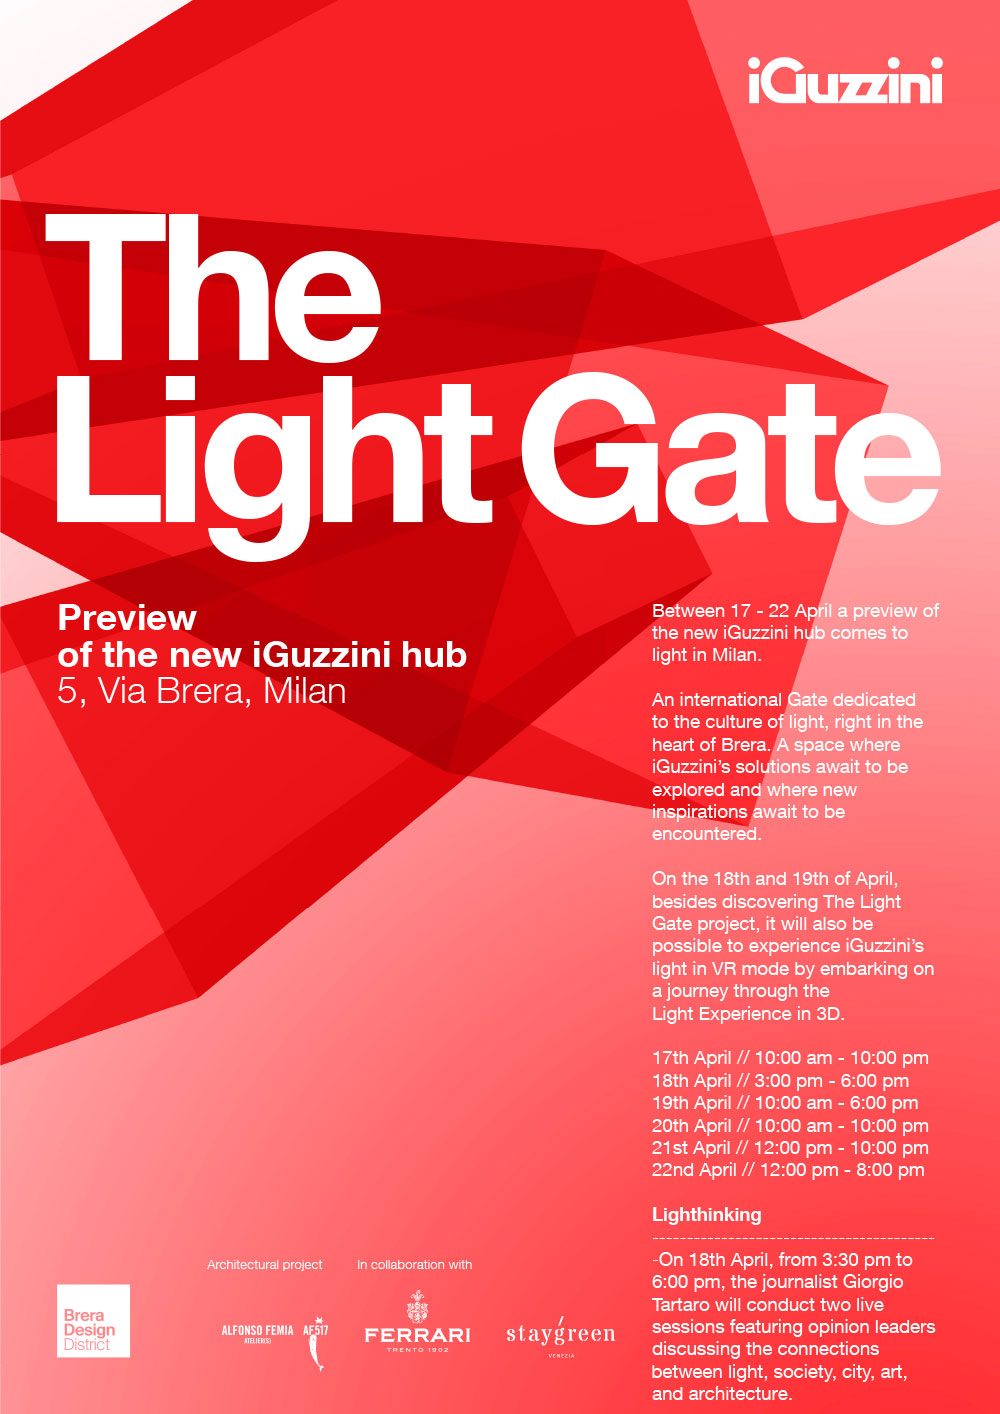 The Light Gate